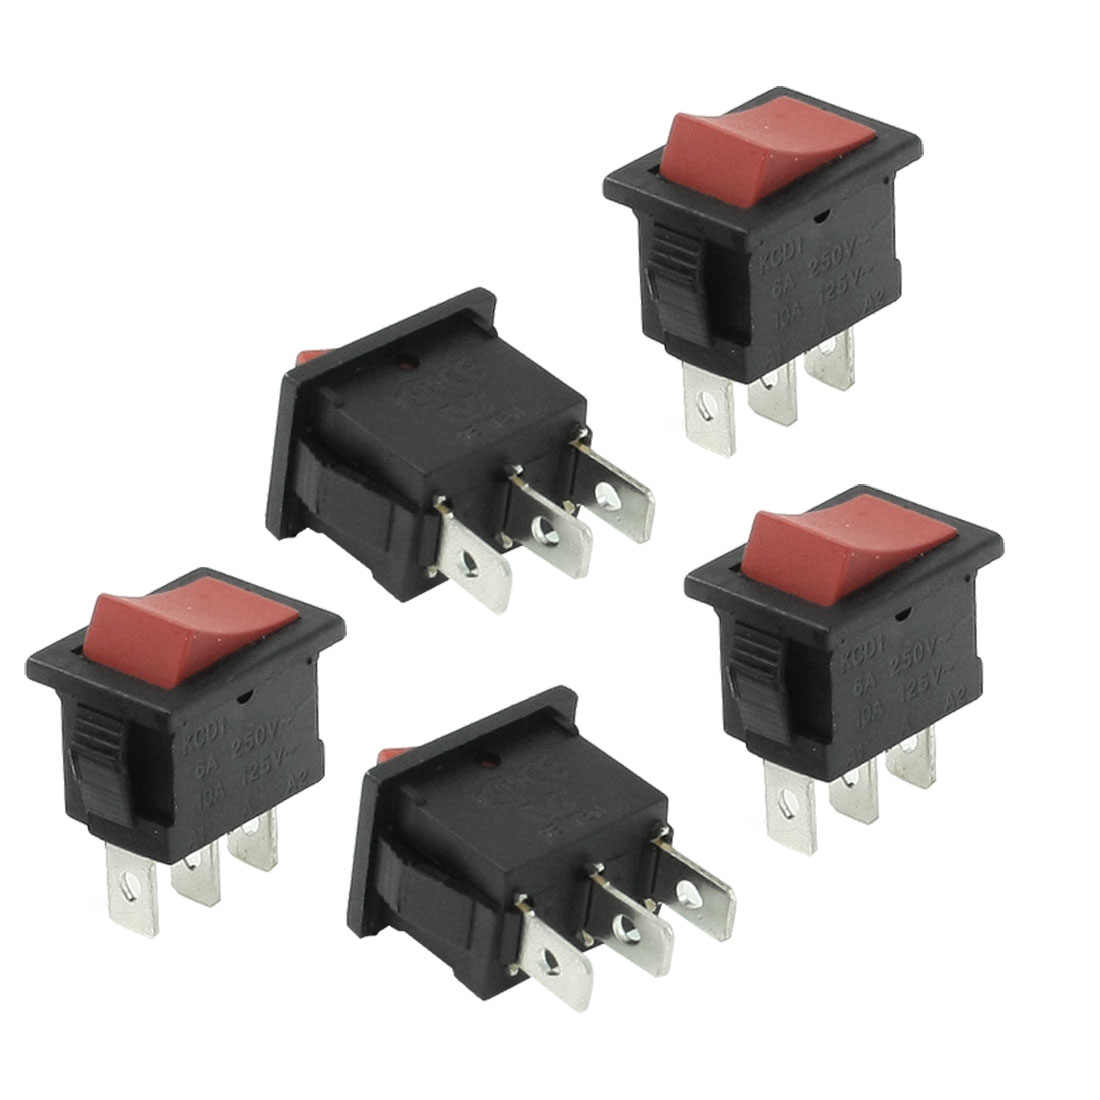 6A 250VAC 10A 125VAC 3 Pin SPDT Red Button ON/OFF Boat Rocker Switch 5 Pcs